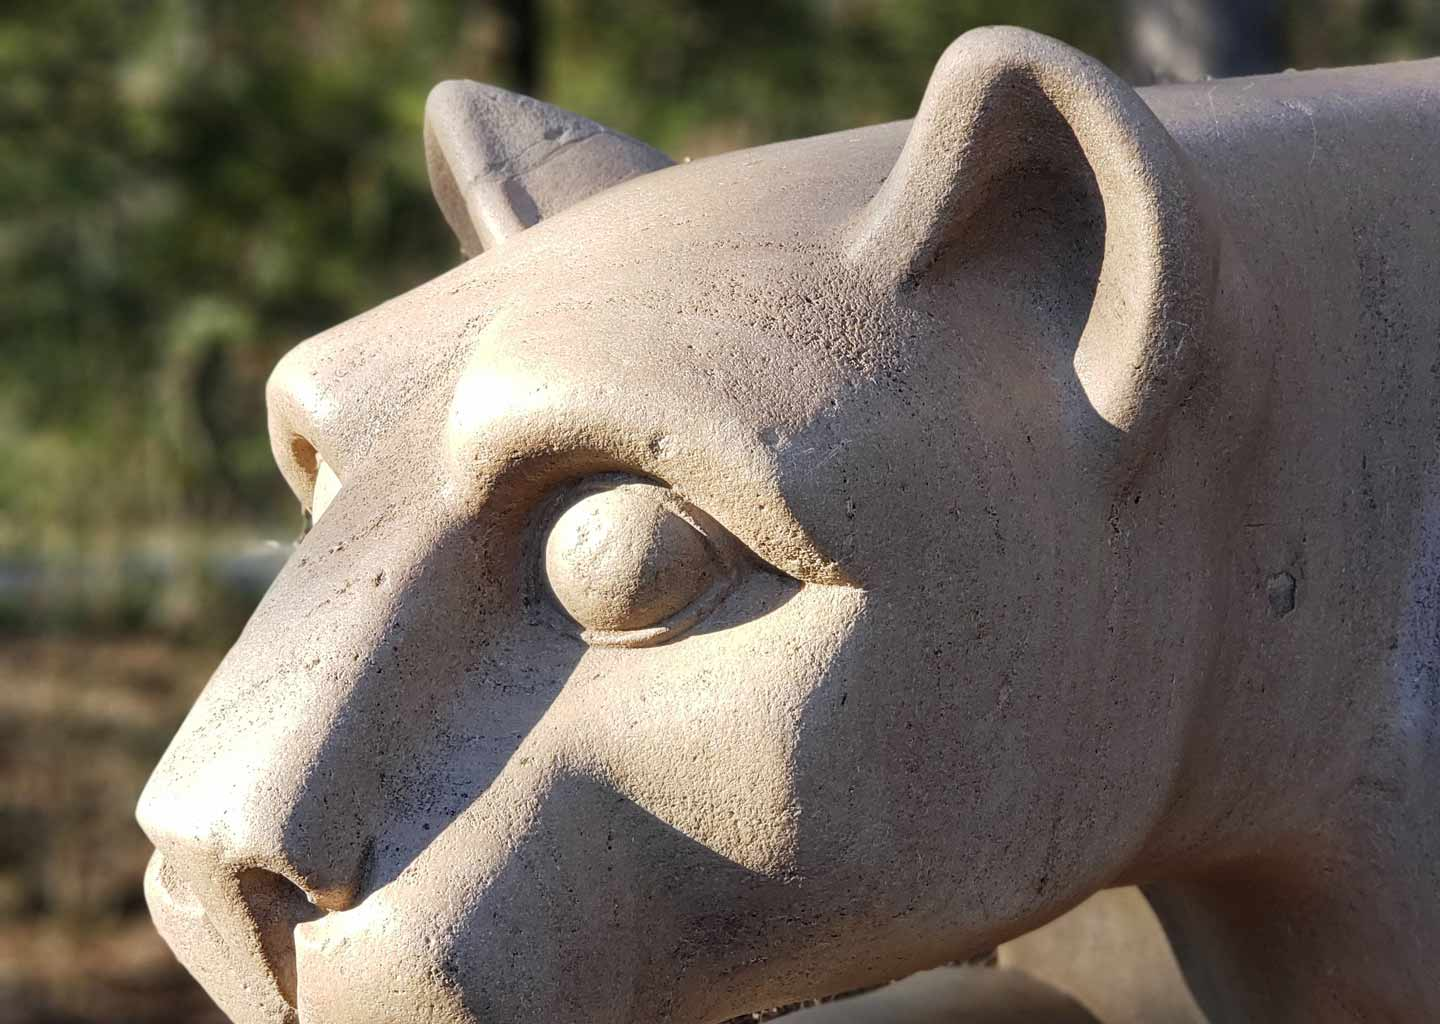 The Penn State lion shrine head at sunset